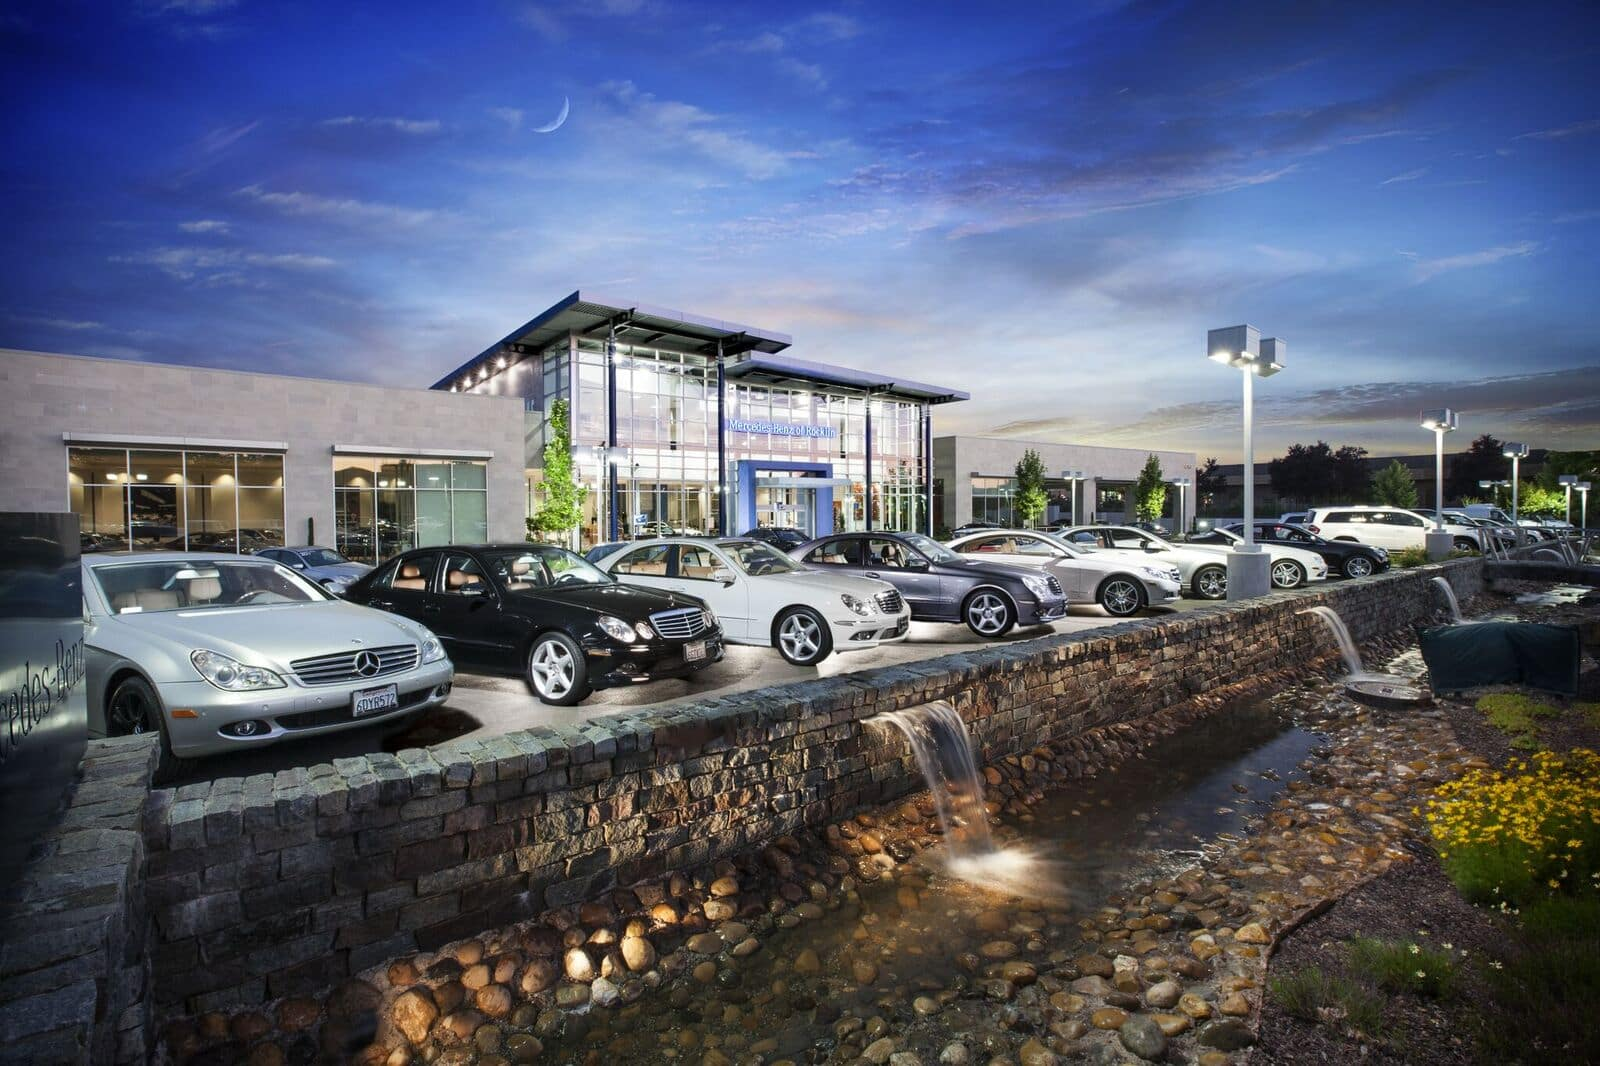 mercedes benz dealer in rocklin ca mercedes benz of rocklin ForMercedes Benz Rocklin Service